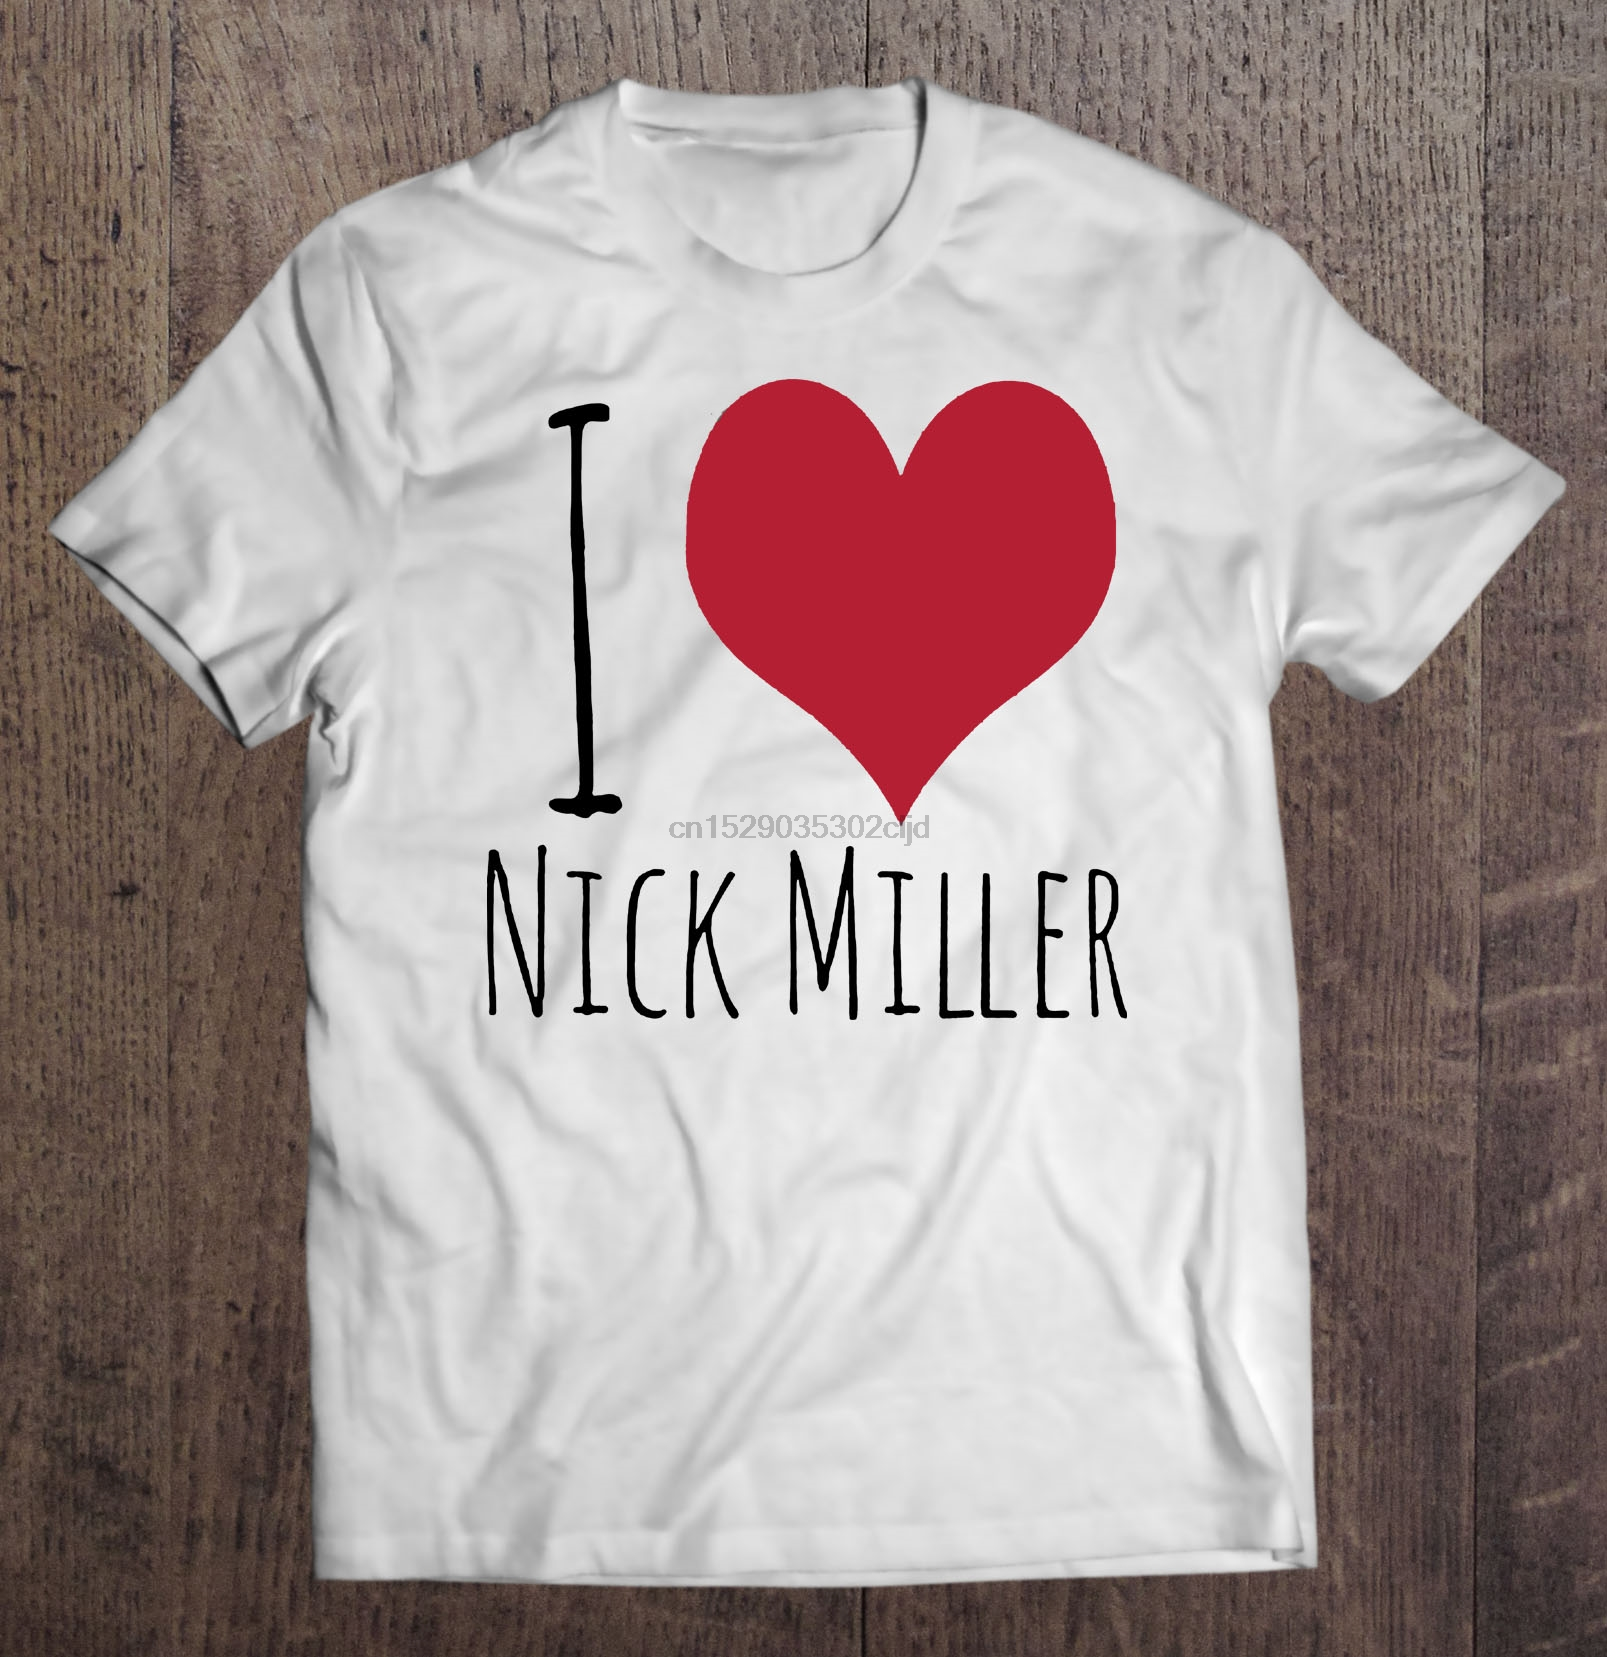 I Heart Love Nick Mens Tee Shirt Pick Size Color Small-6XL